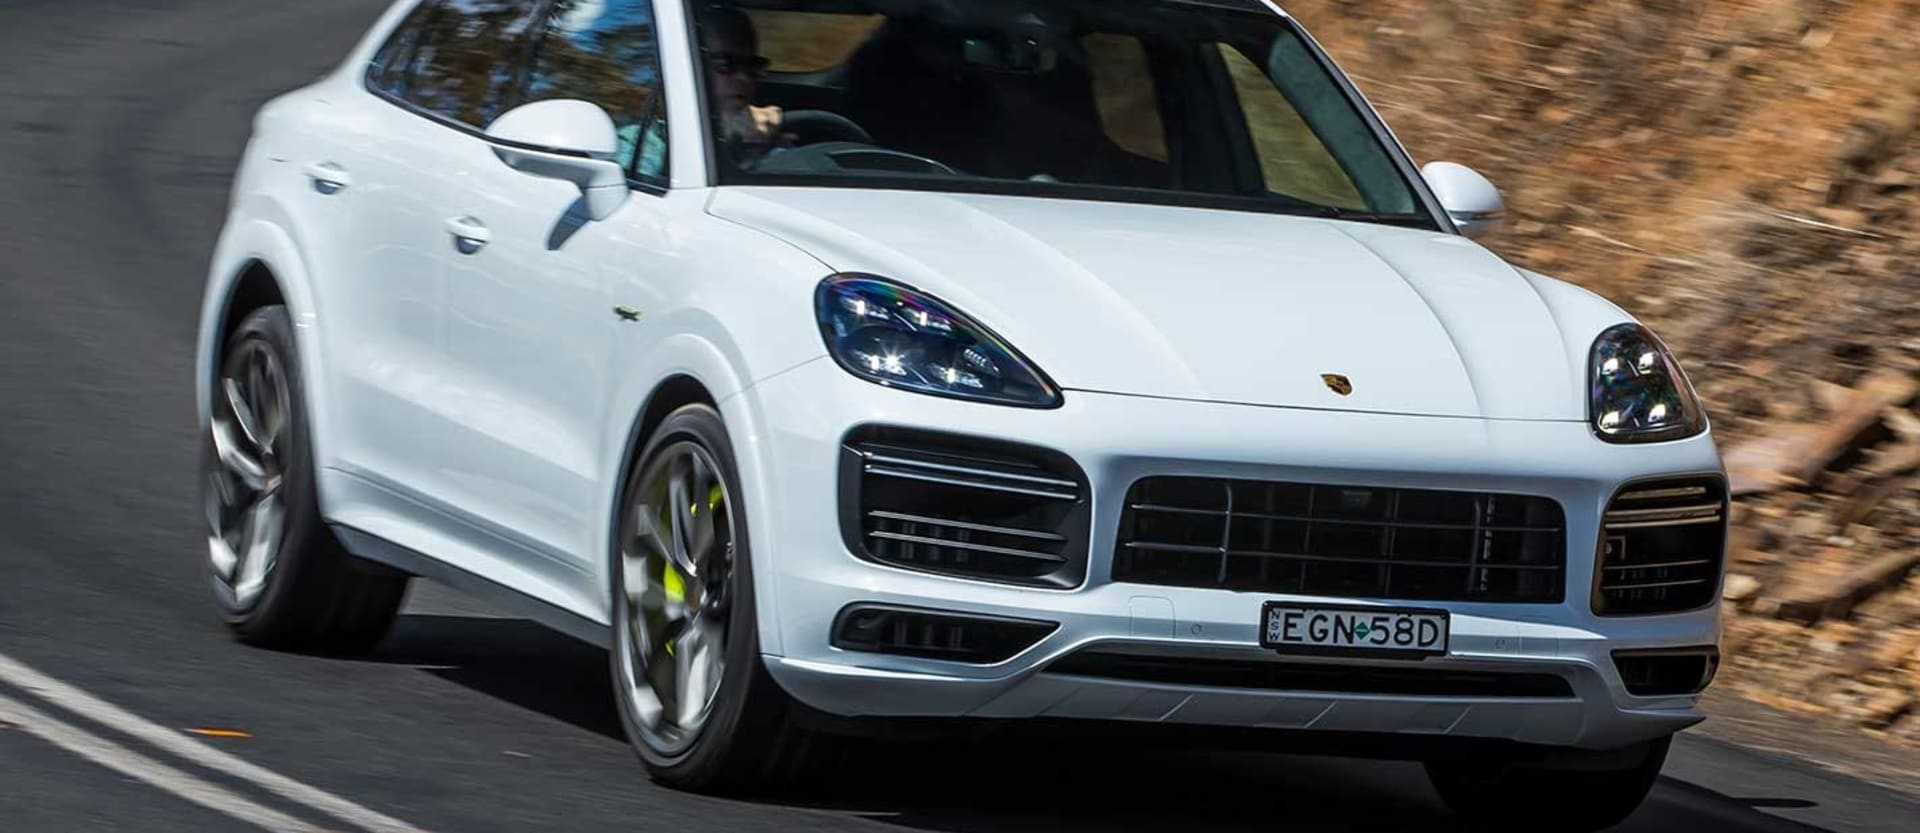 Porsche Cayenne Turbo S E-Hybrid Coupe review